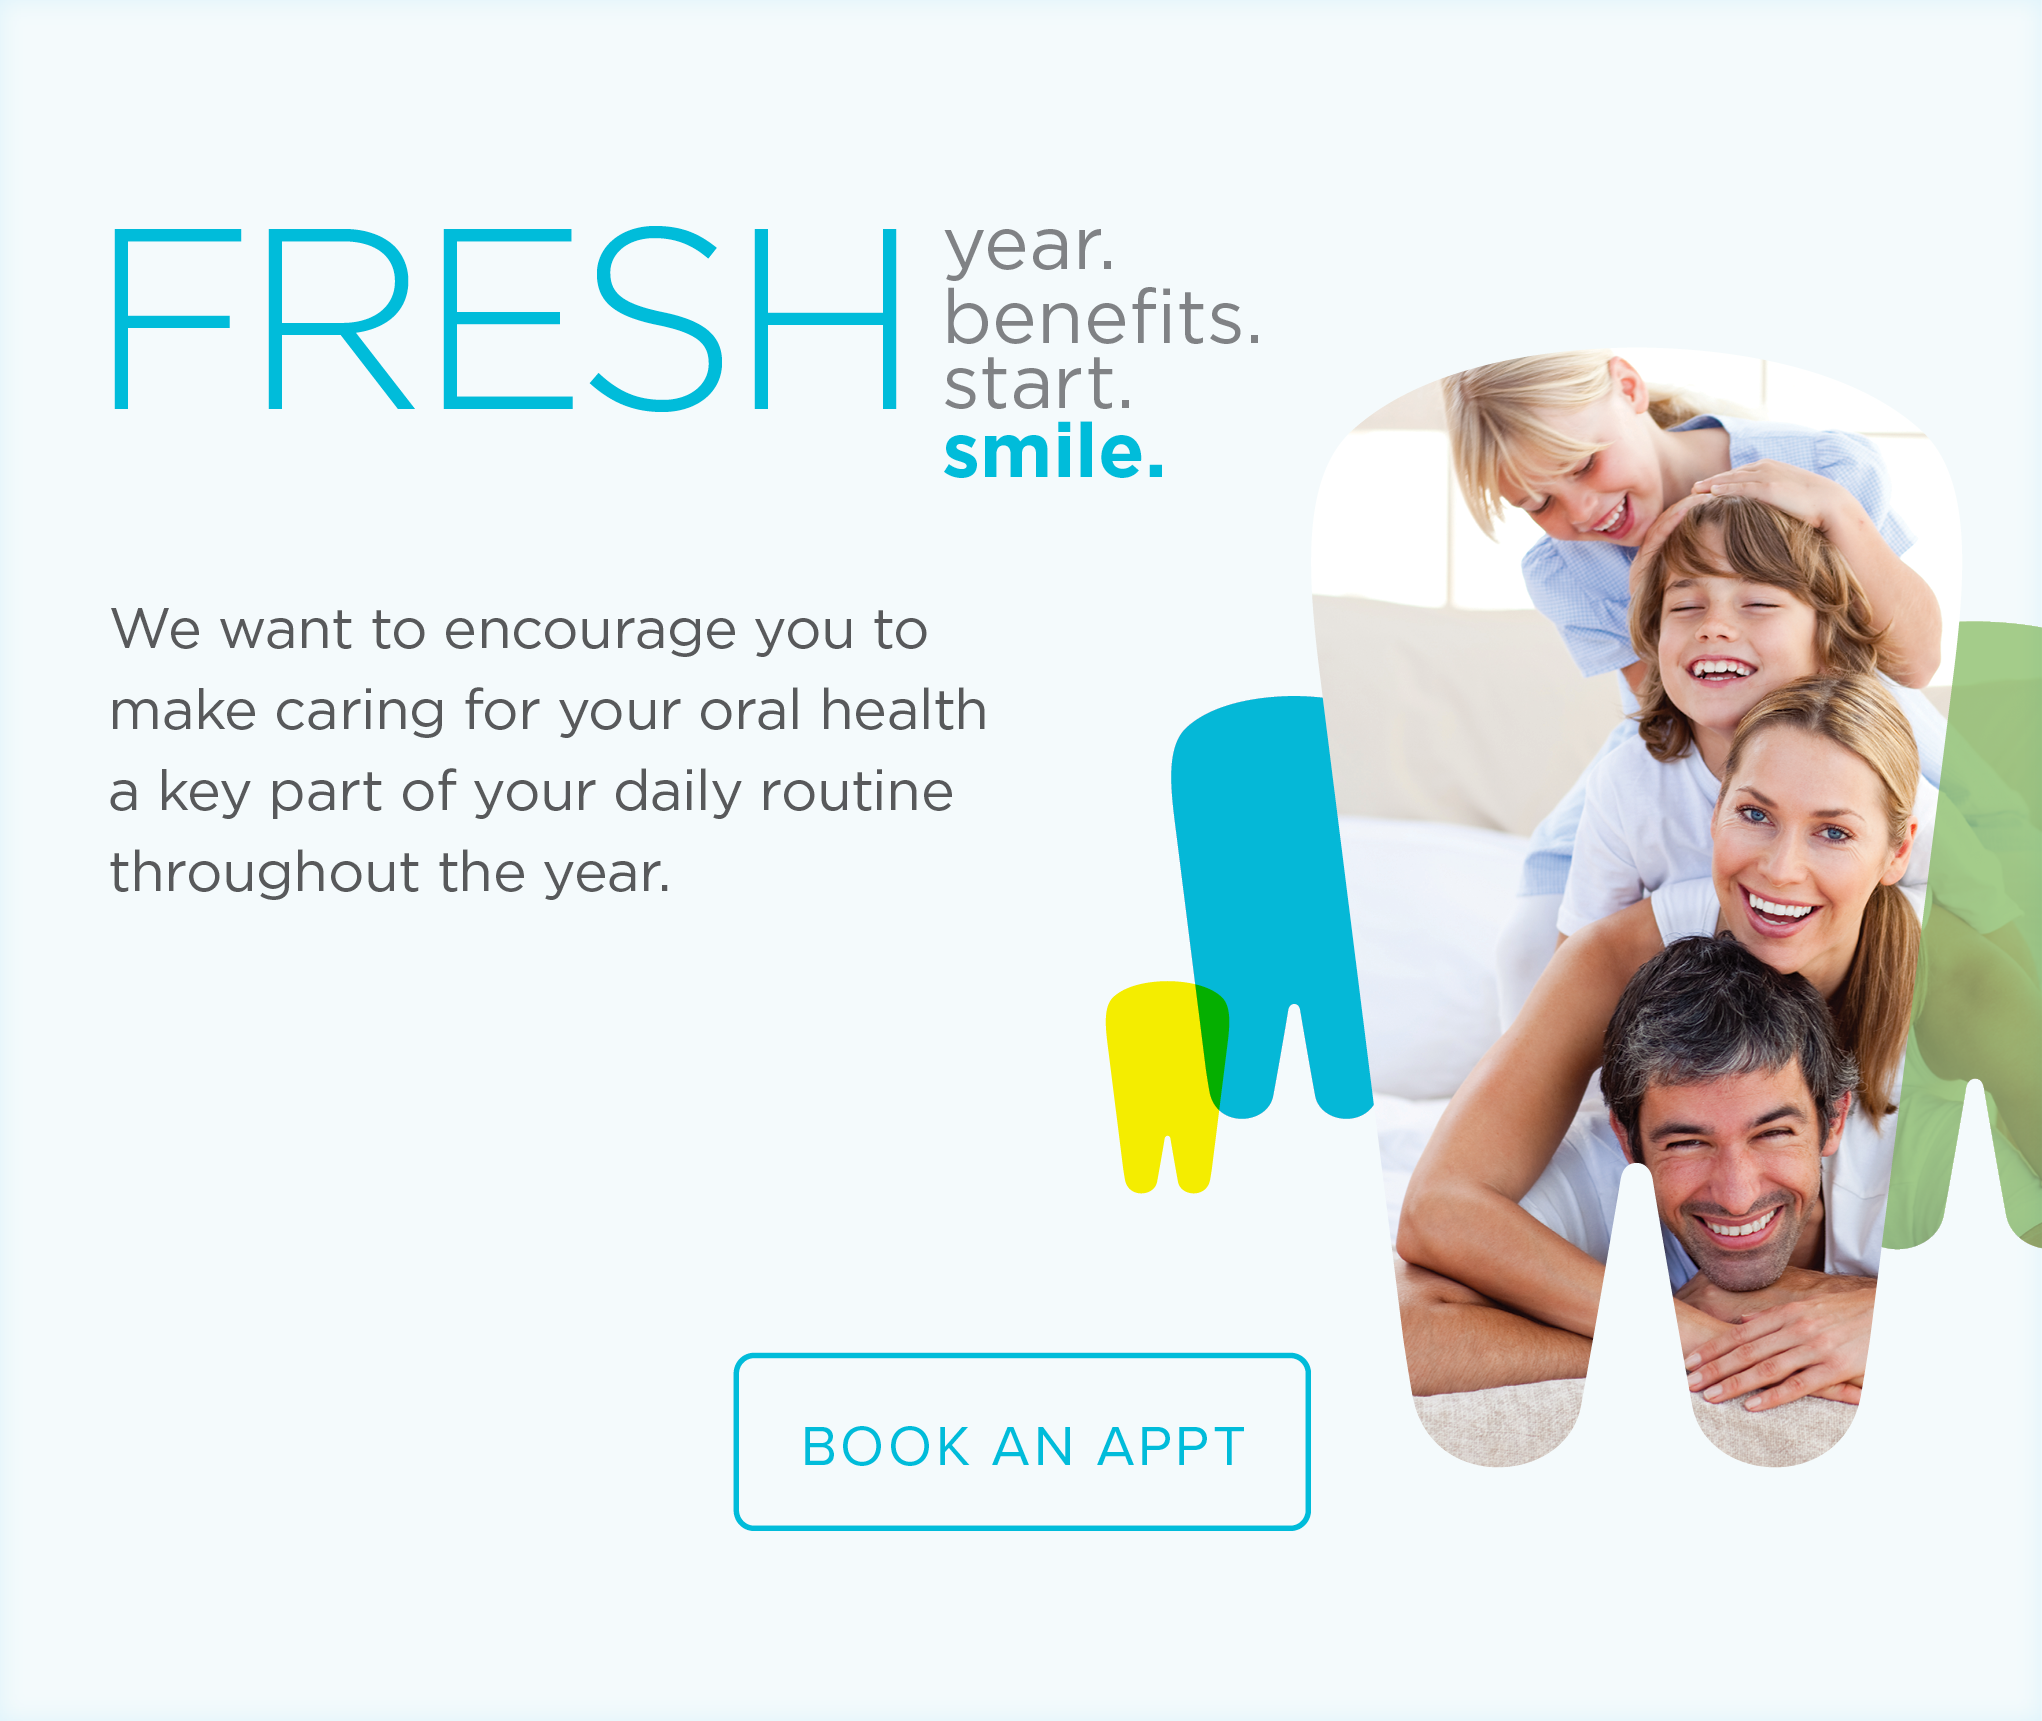 Snohomish Modern Dentistry - Make the Most of Your Benefits